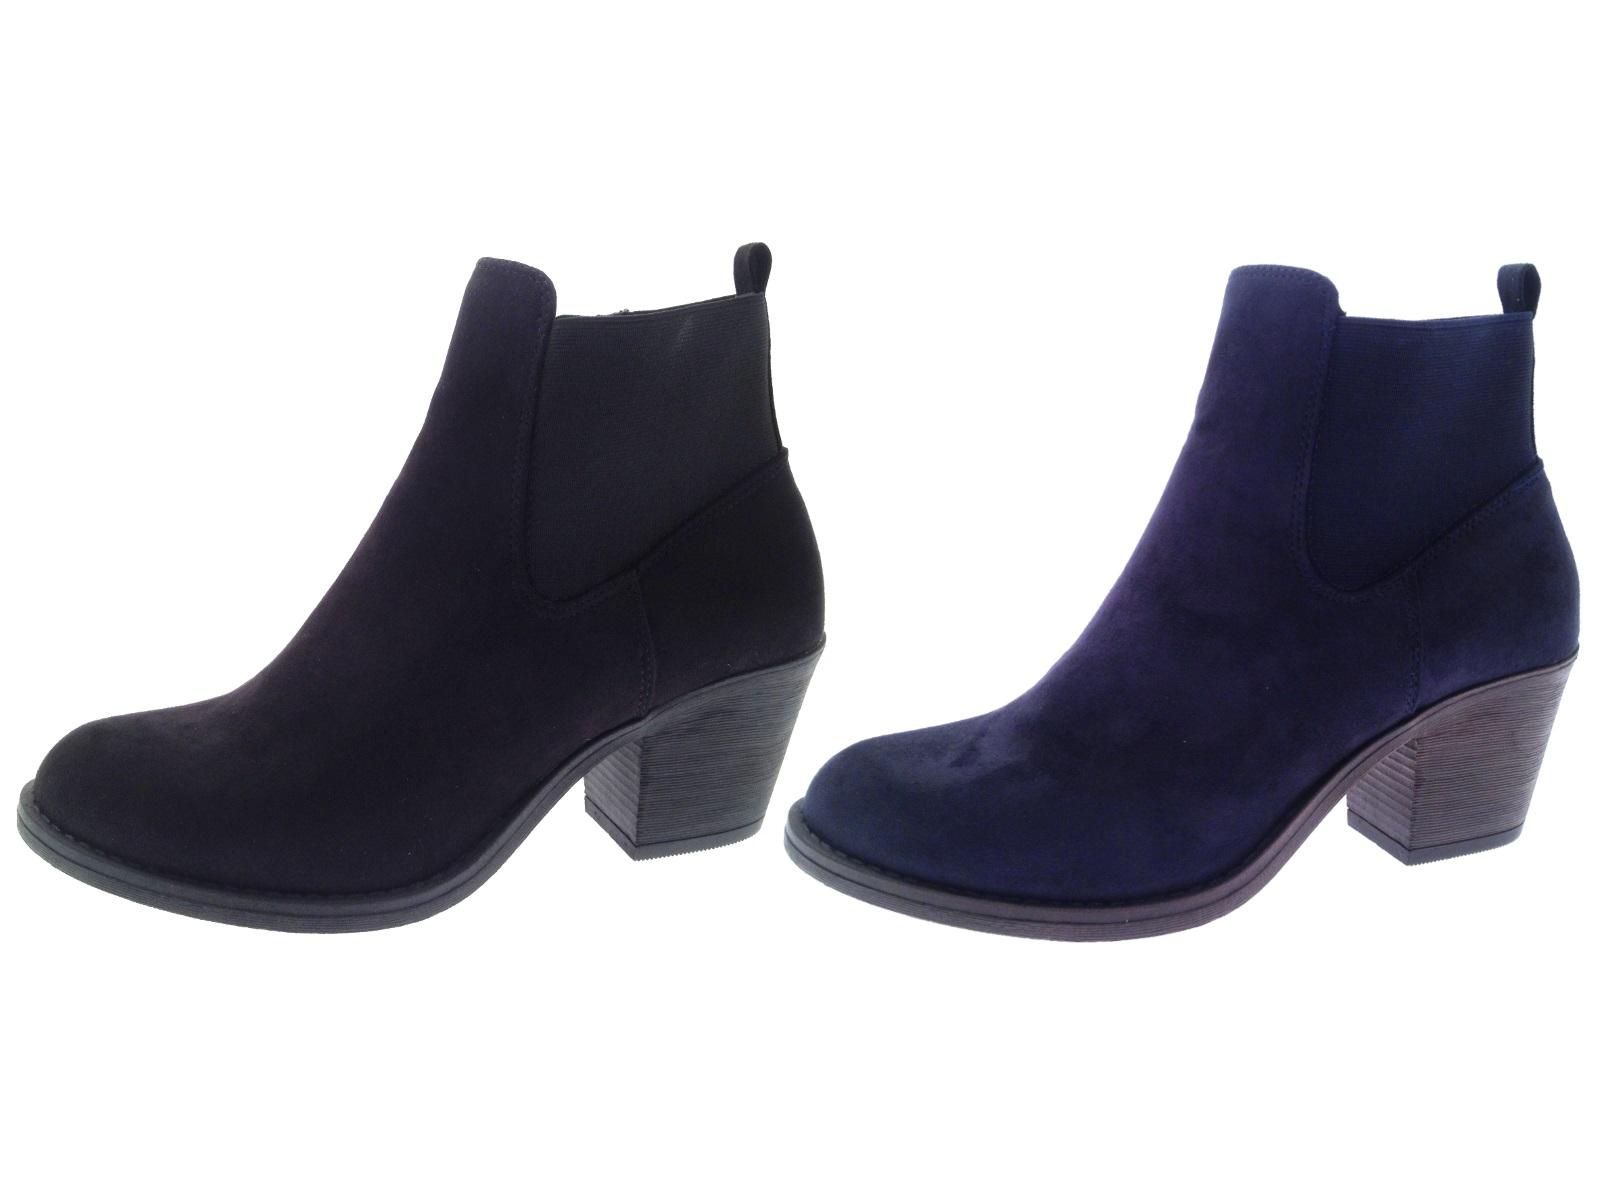 bf22a59462be Womens Chunky Block Heel Chelsea Ankle Boots Faux Suede Leather ...